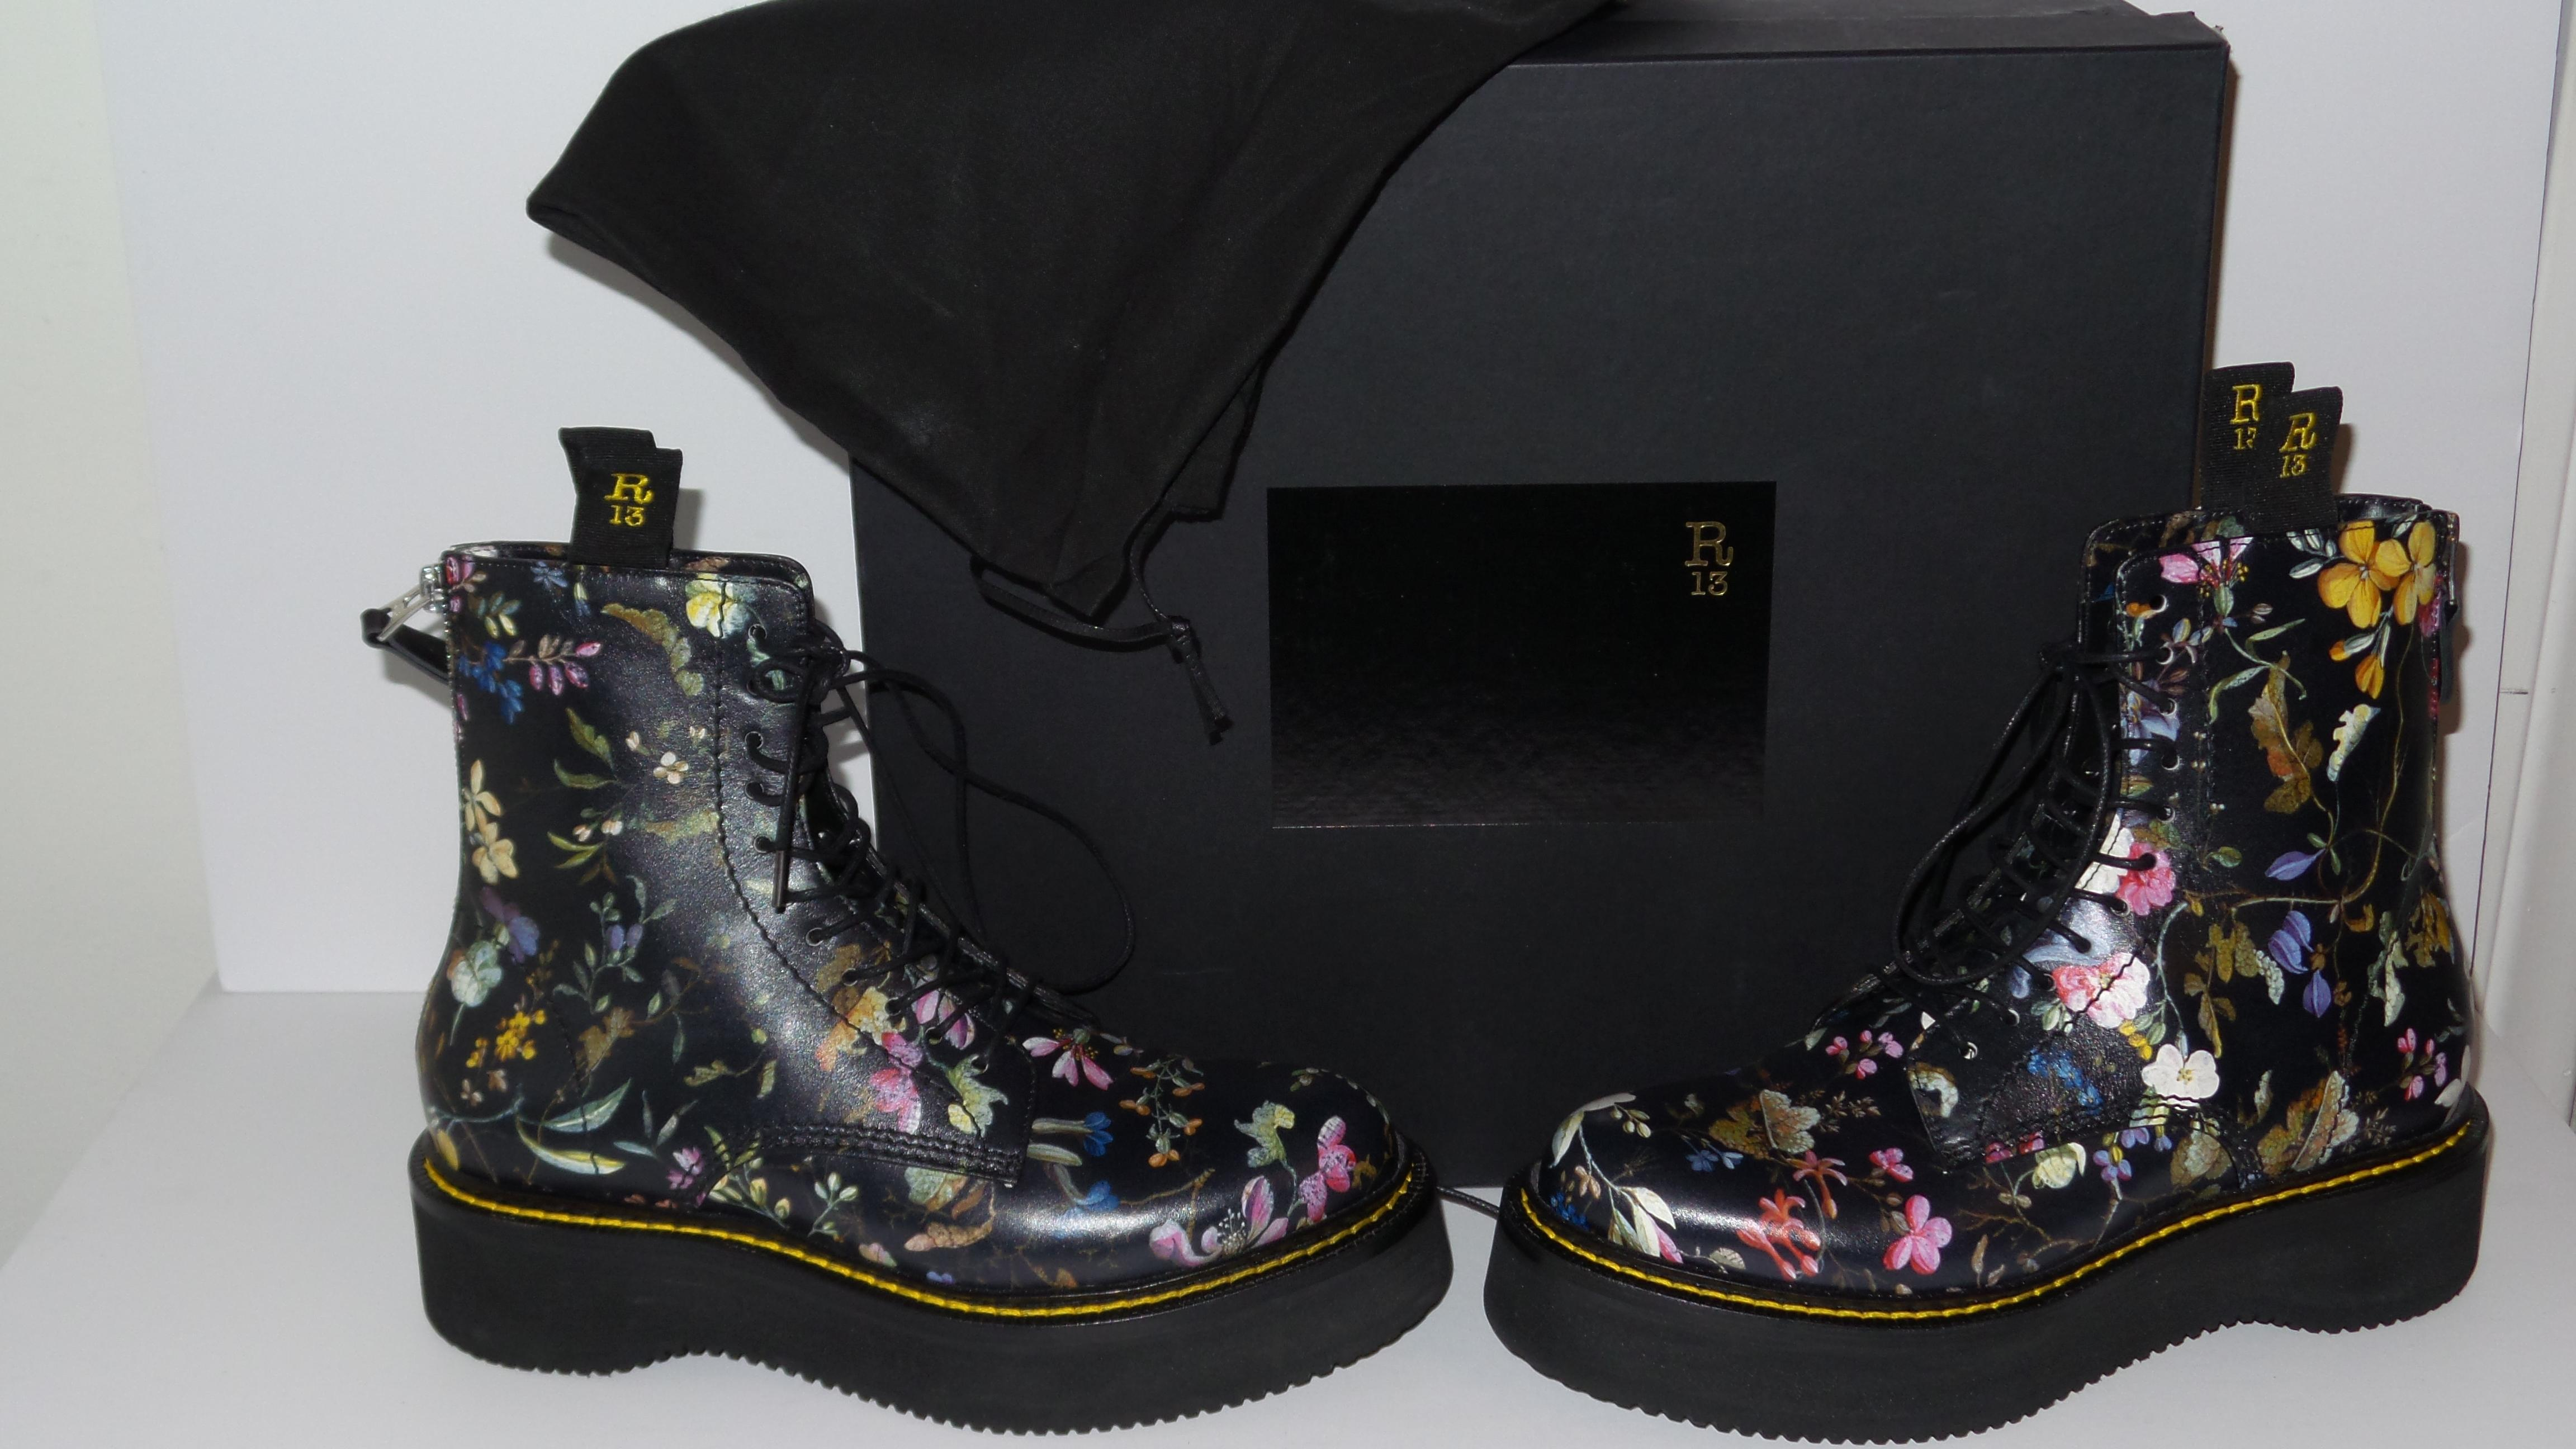 6d94c8e50cca ... R13 Black Multi Floral Leather Stack Stack Stack Flannel Combat Ankle  Boots Booties Size EU